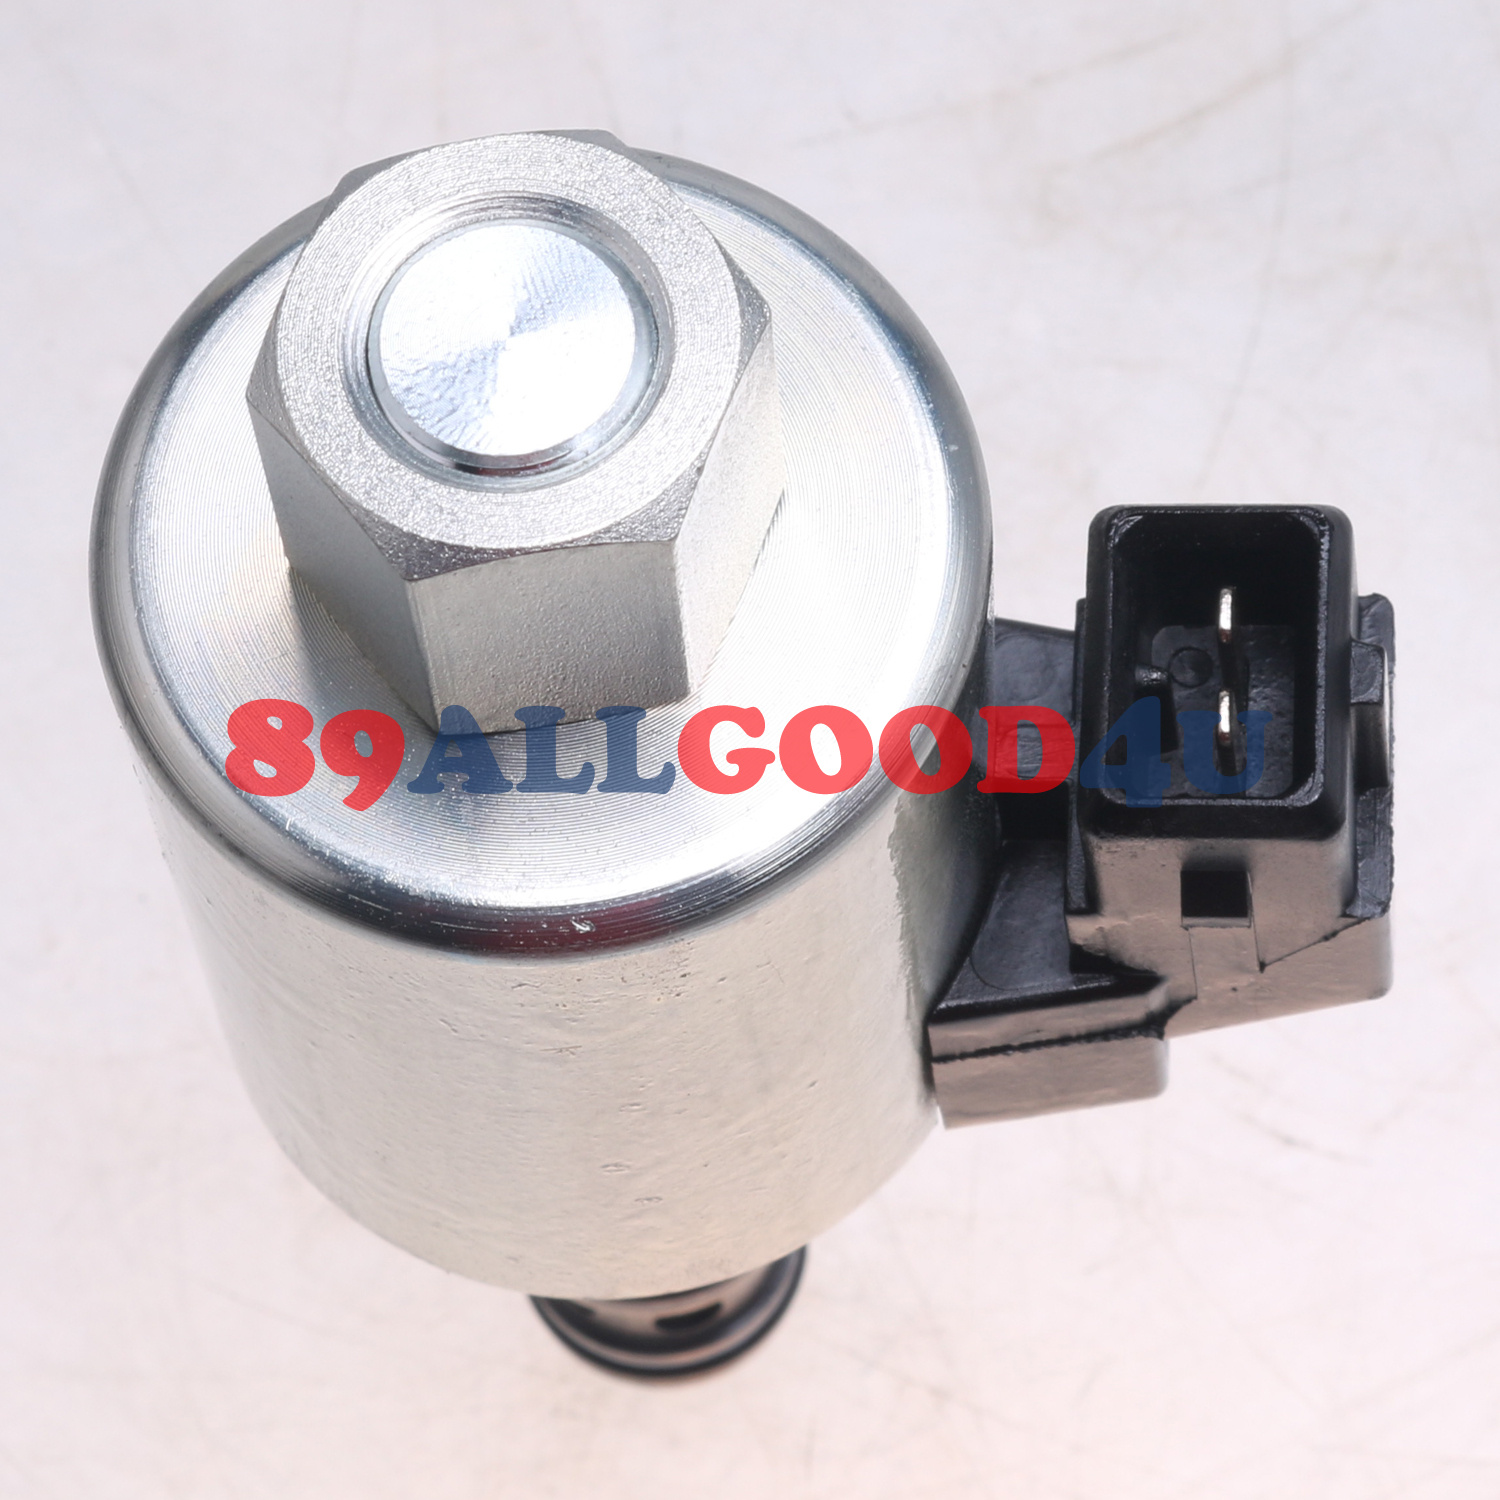 Details about Transmission Solenoid Valve 25/105200 For JCB Backhoe Loader  3C, 3CX, 3D, 3DX,